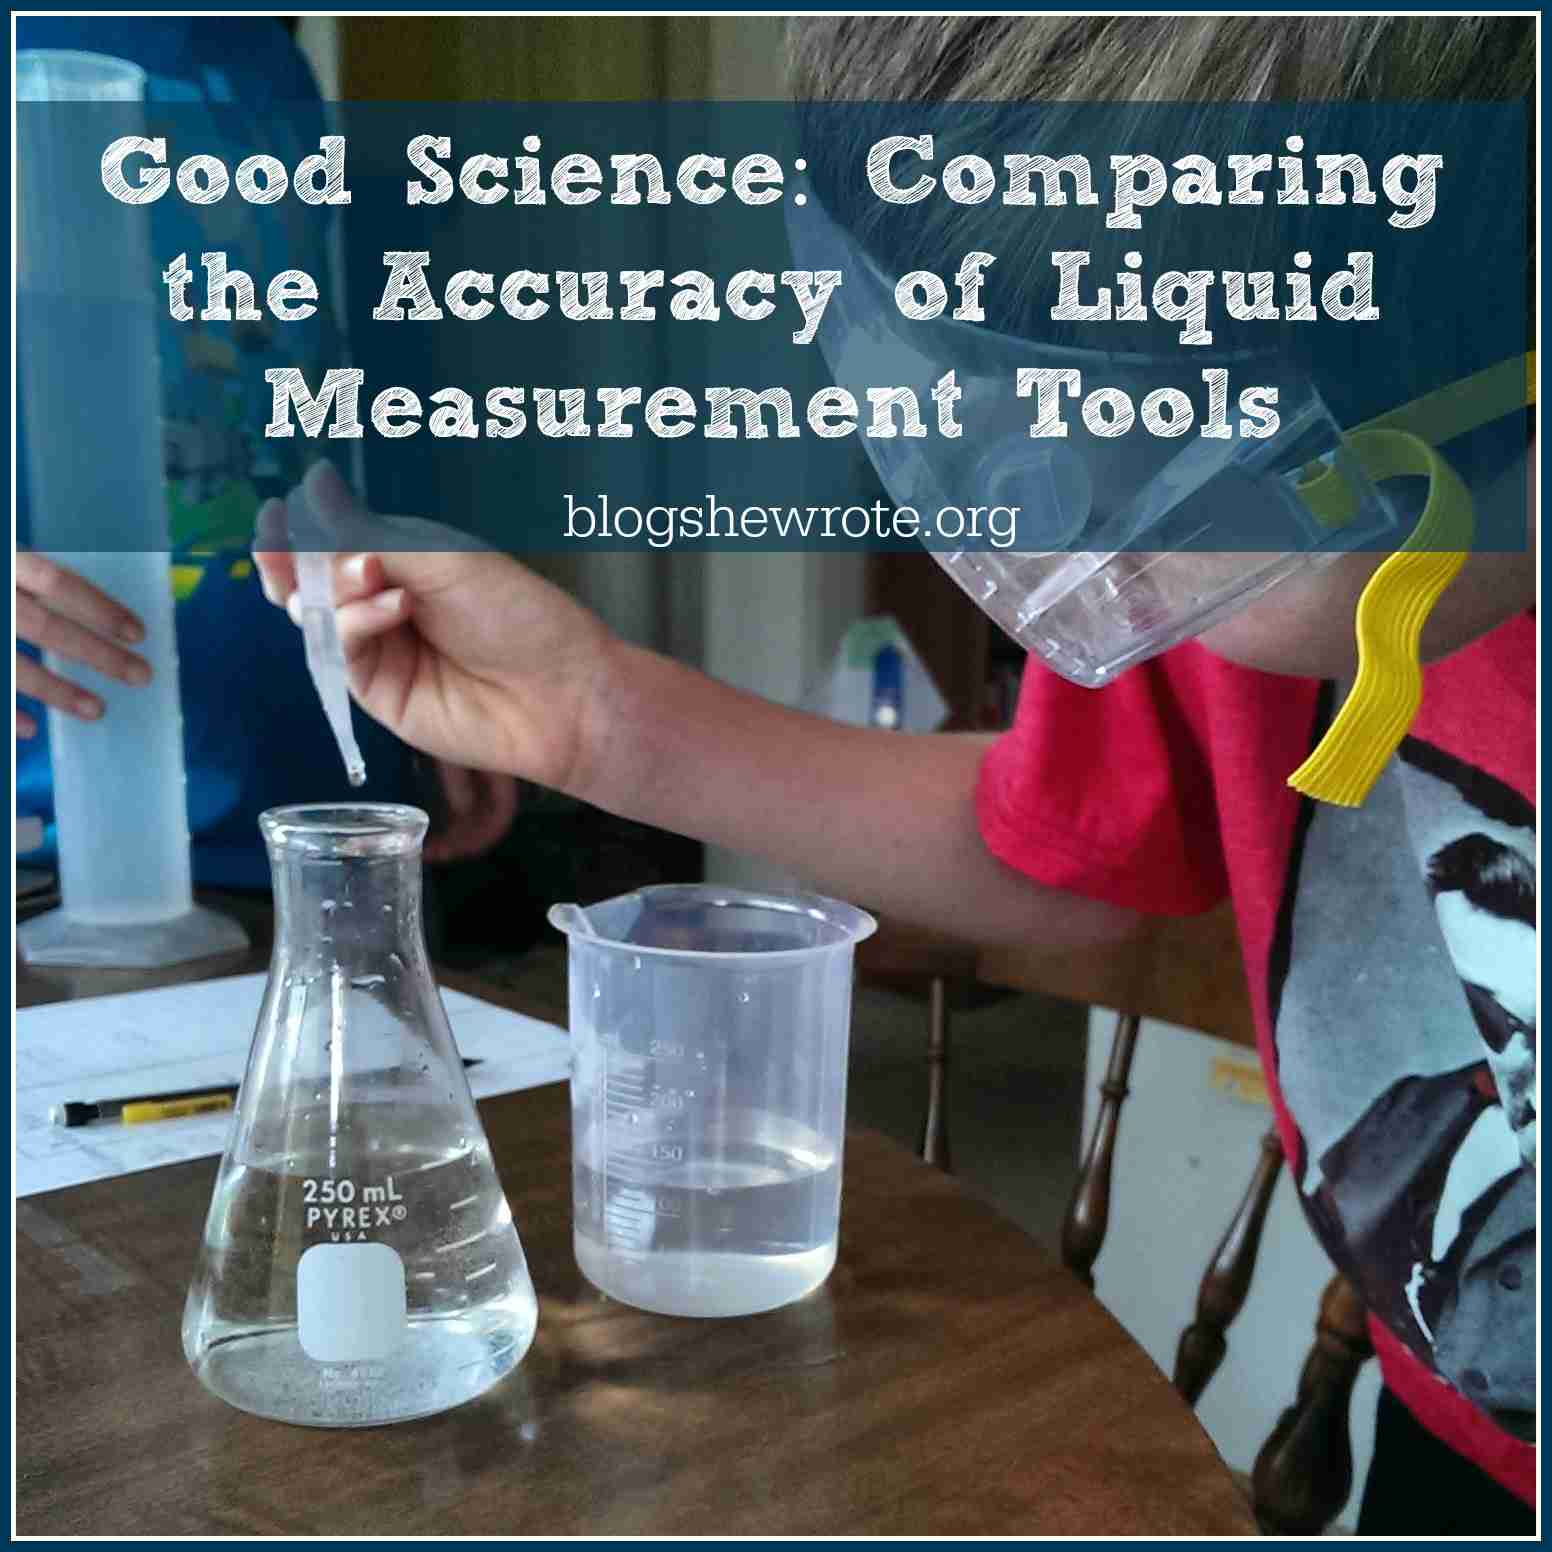 Science Measuring Instruments : Comparing the accuracy of liquid measurement tools